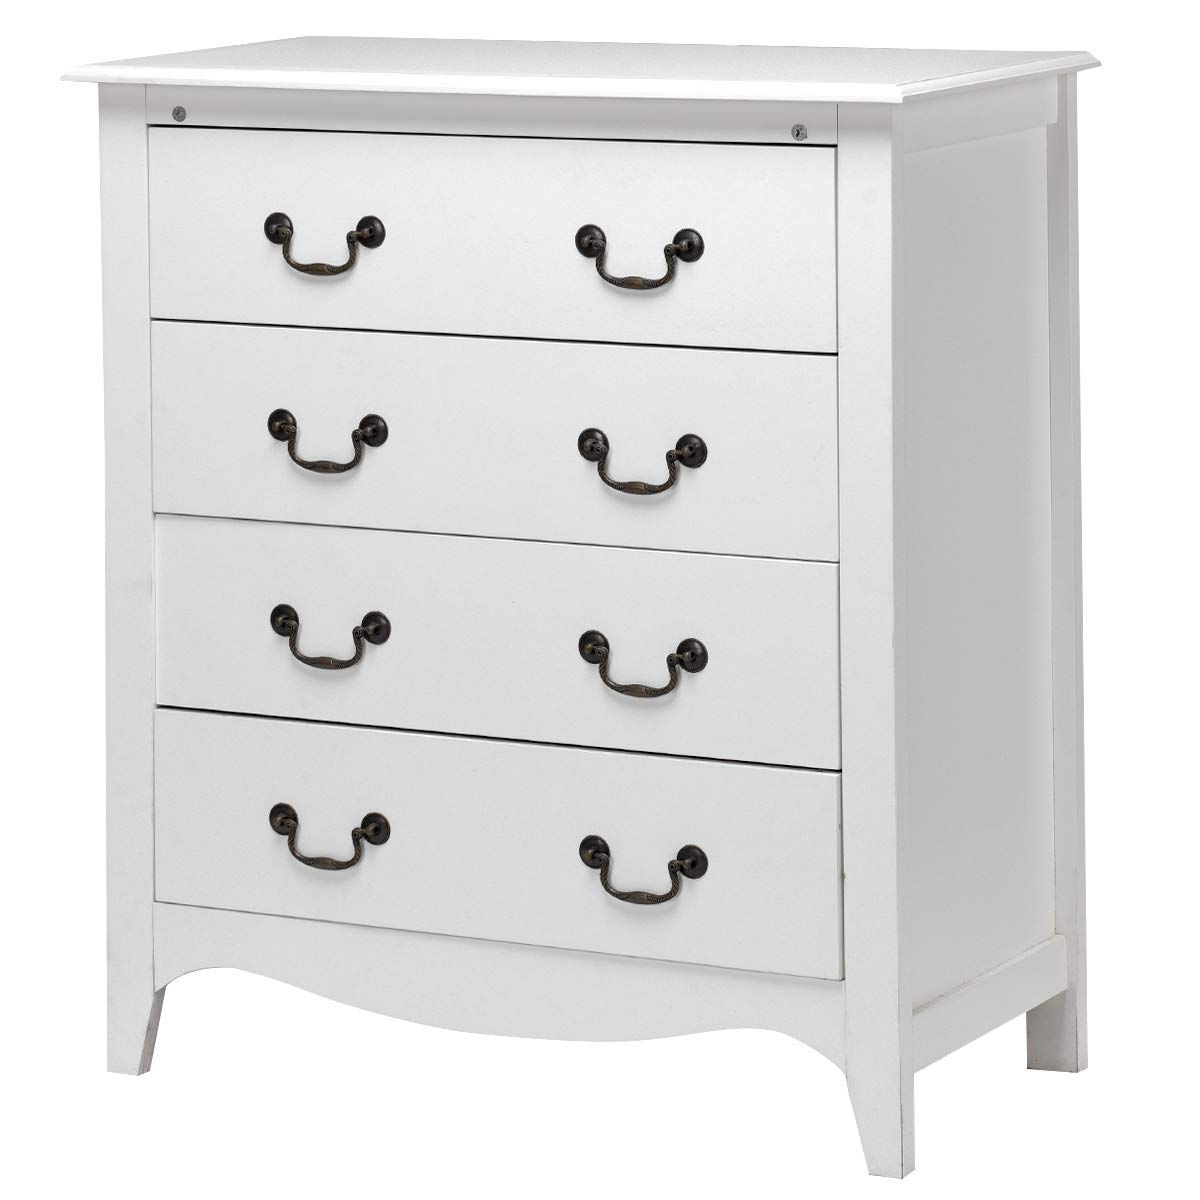 Giantex Chest Dresser Organizer Storage Cabinet Home Bedroom Living Room Furniture End Table Accent Armoire w/ 4 Big Drawers, White by Giantex